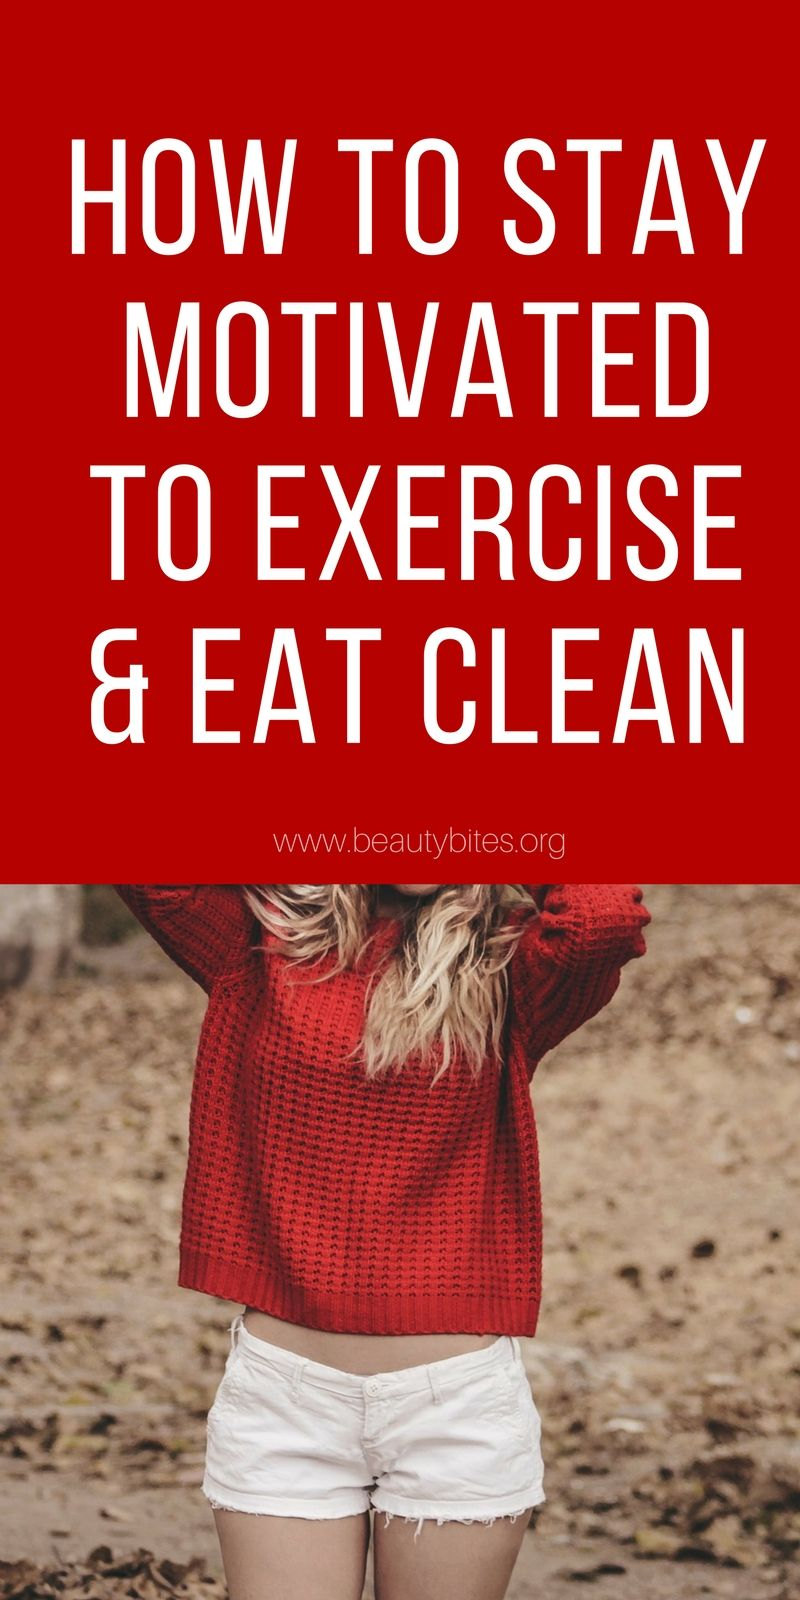 How To Stay Motivated To Exercise And Eat Healthy - Beauty Bites